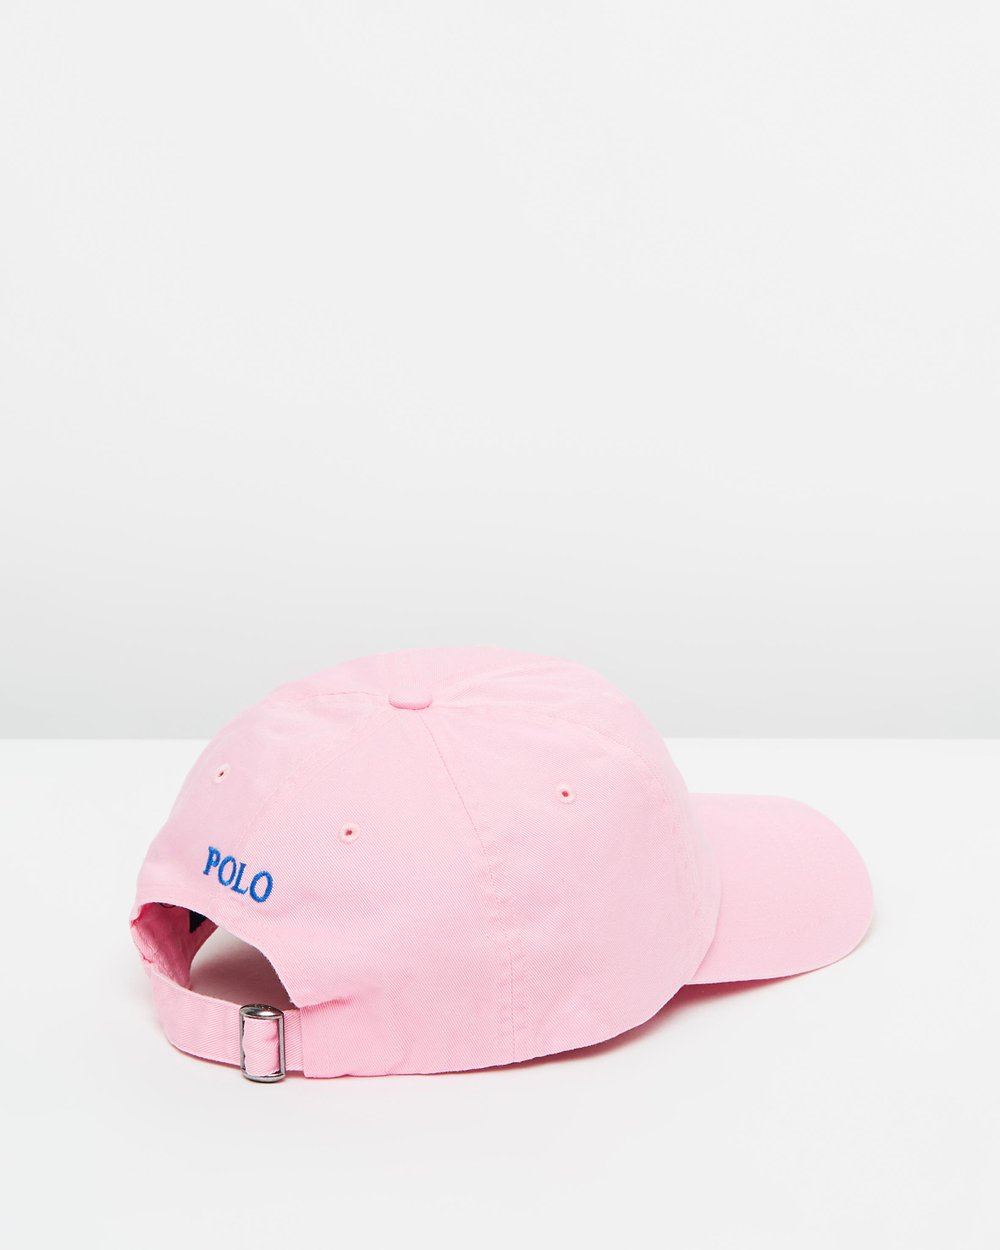 Cotton Chino Sport Cap by Polo Ralph Lauren Online   THE ICONIC   Australia 963aa1328c